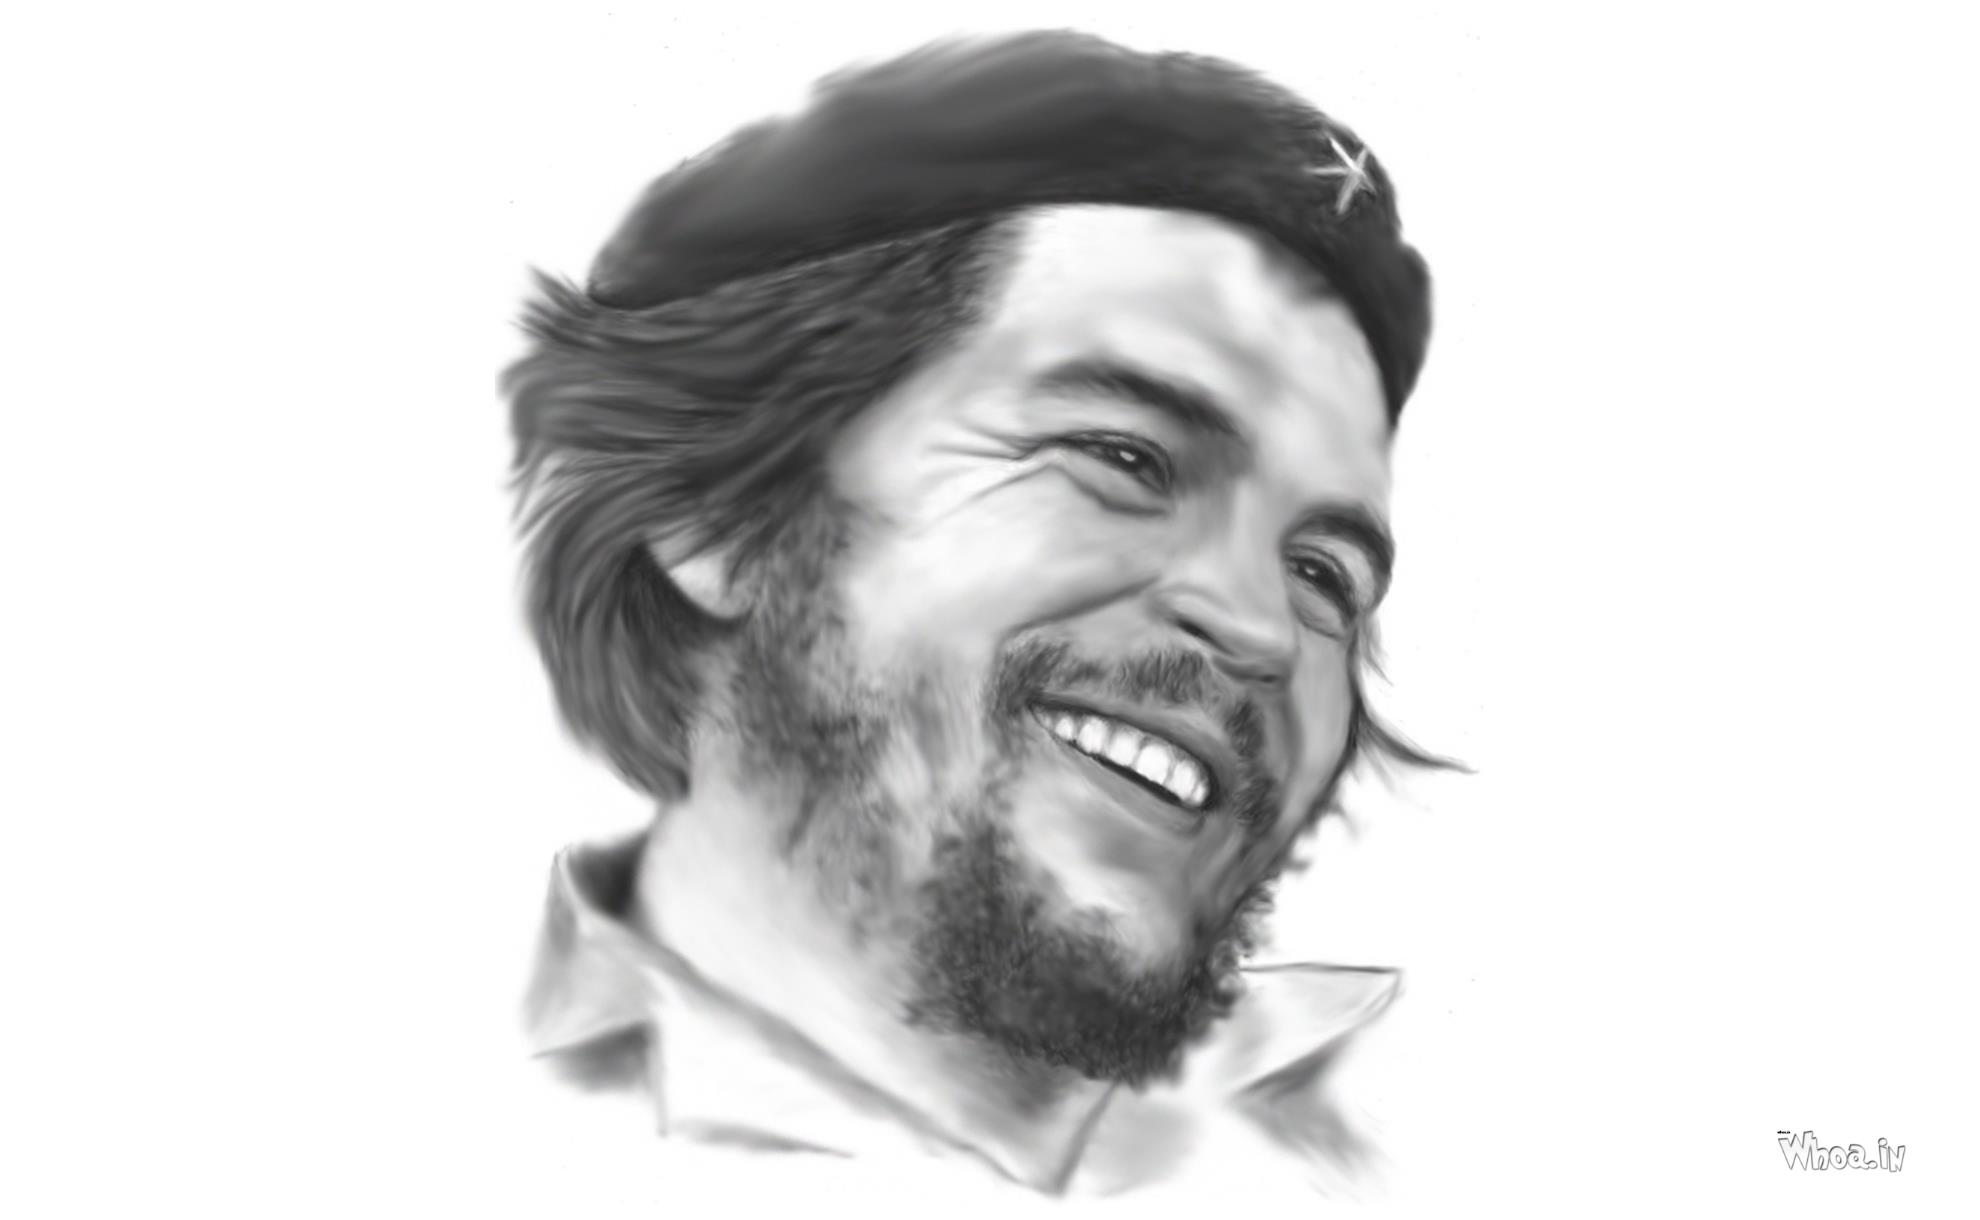 Che guevara face pencil art hd wallpaper